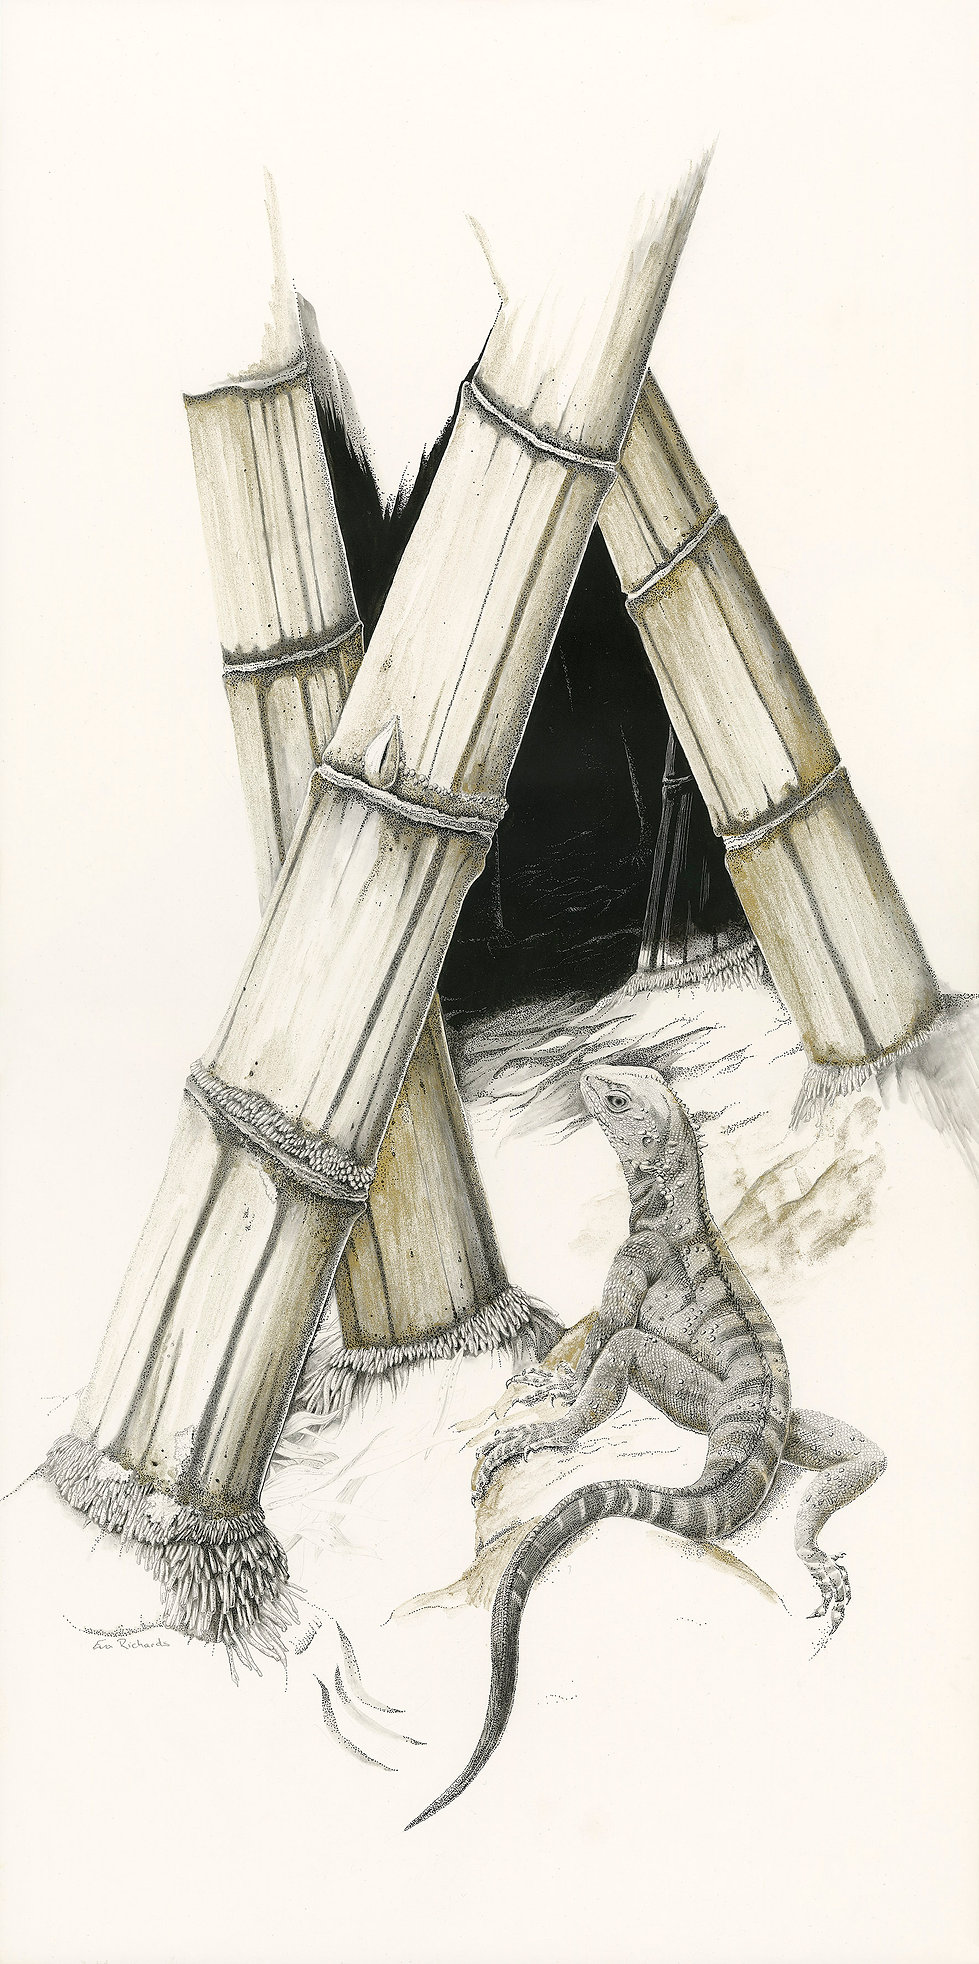 Common bamboo, Eastern Water Dragon, The path of the dragon, Art by Eva Richards, Brisbane, Botanical Artist, Silverpoint